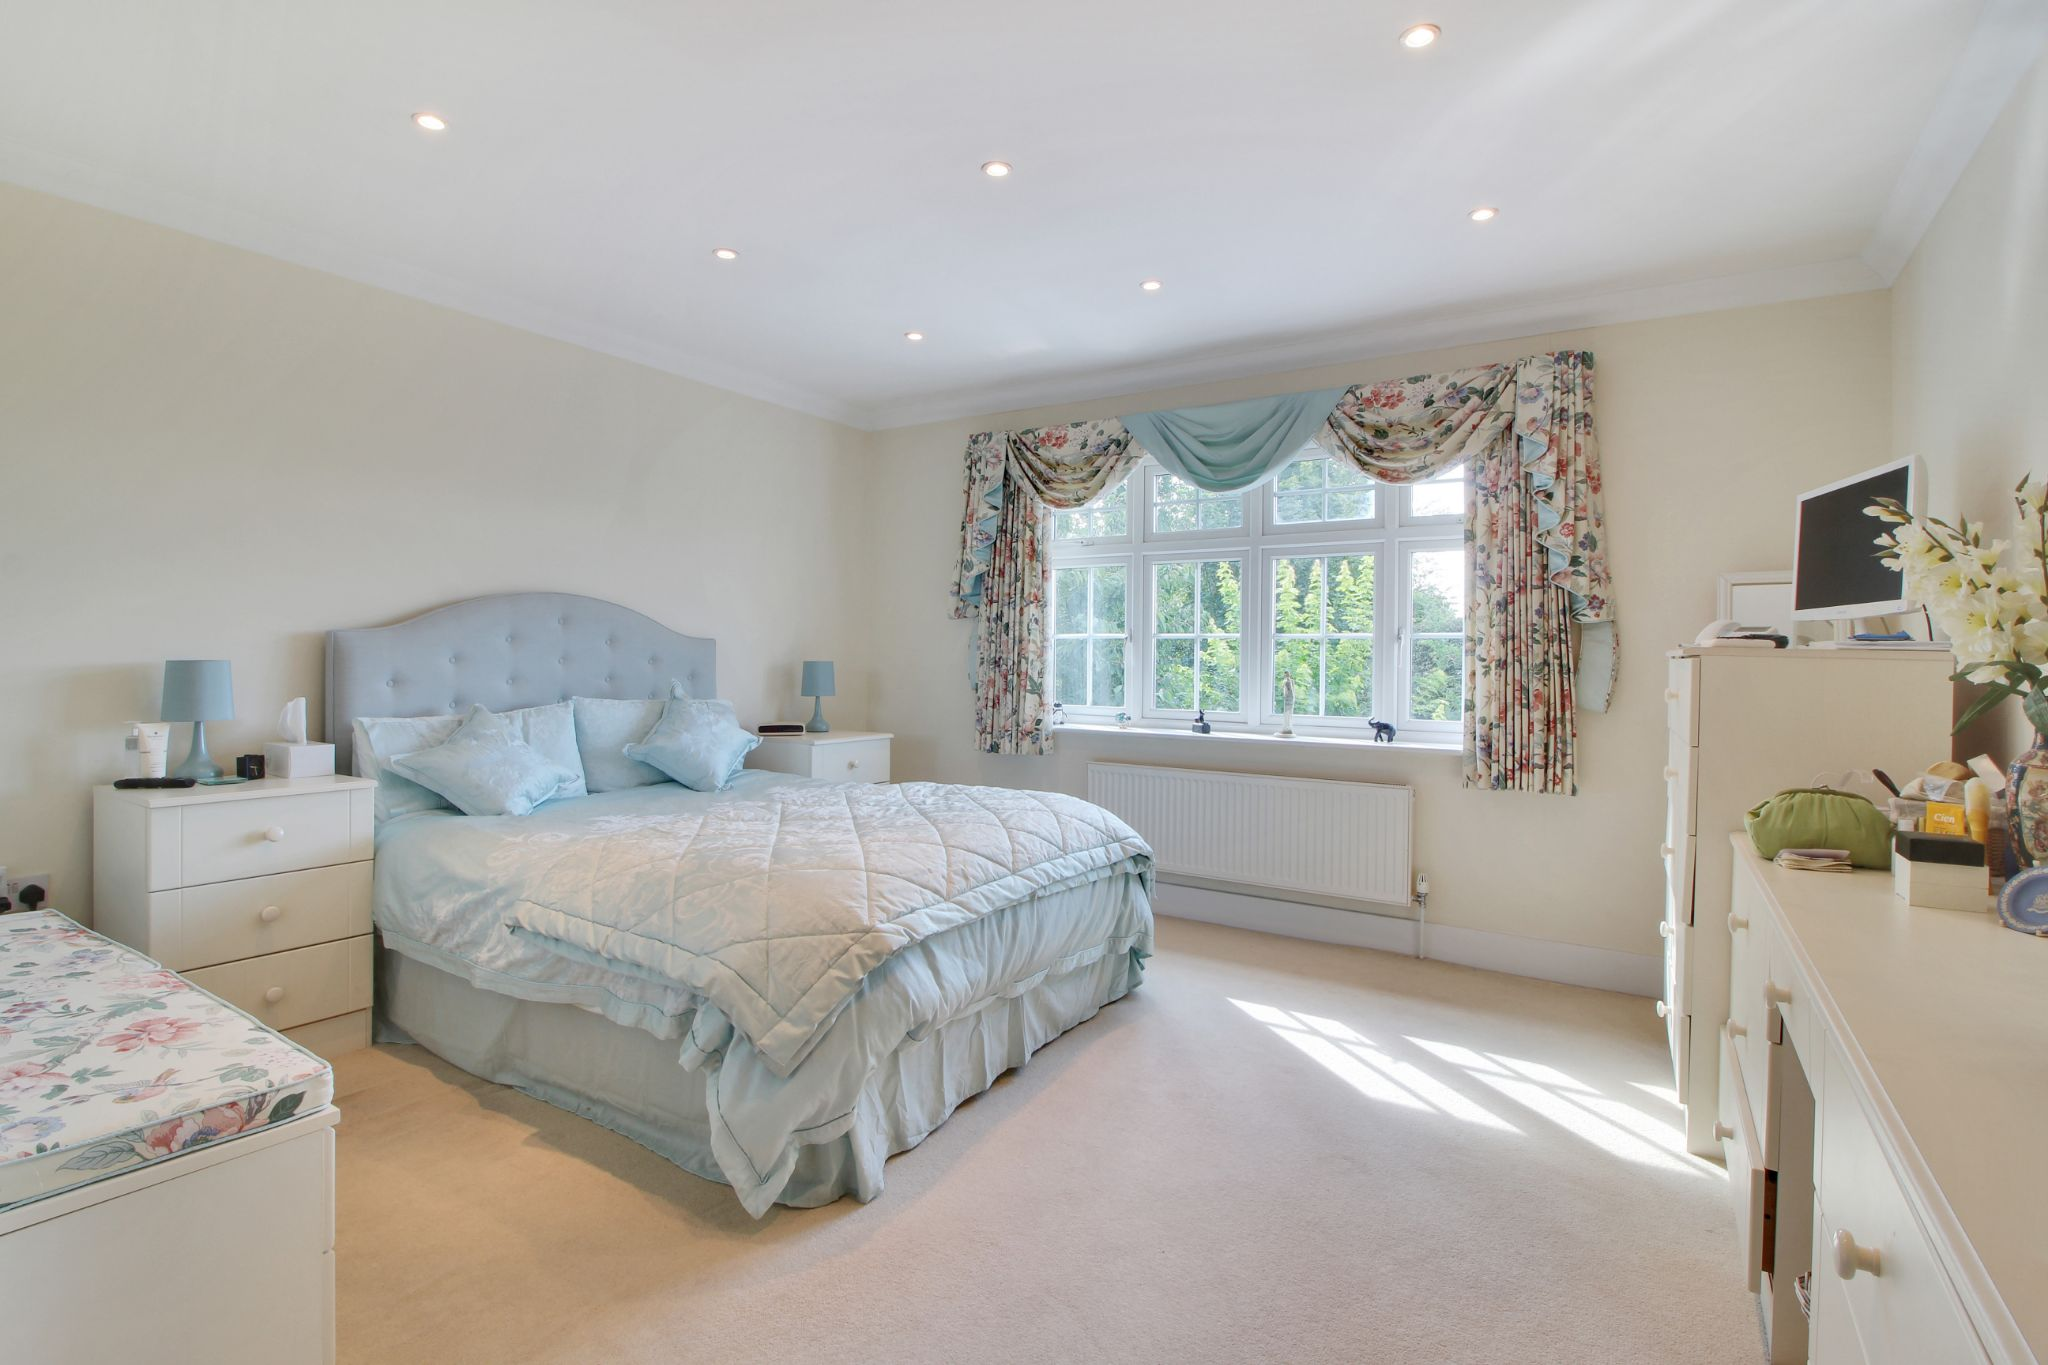 5 bedroom detached house Sale Agreed in Sevenoaks - Photograph 8